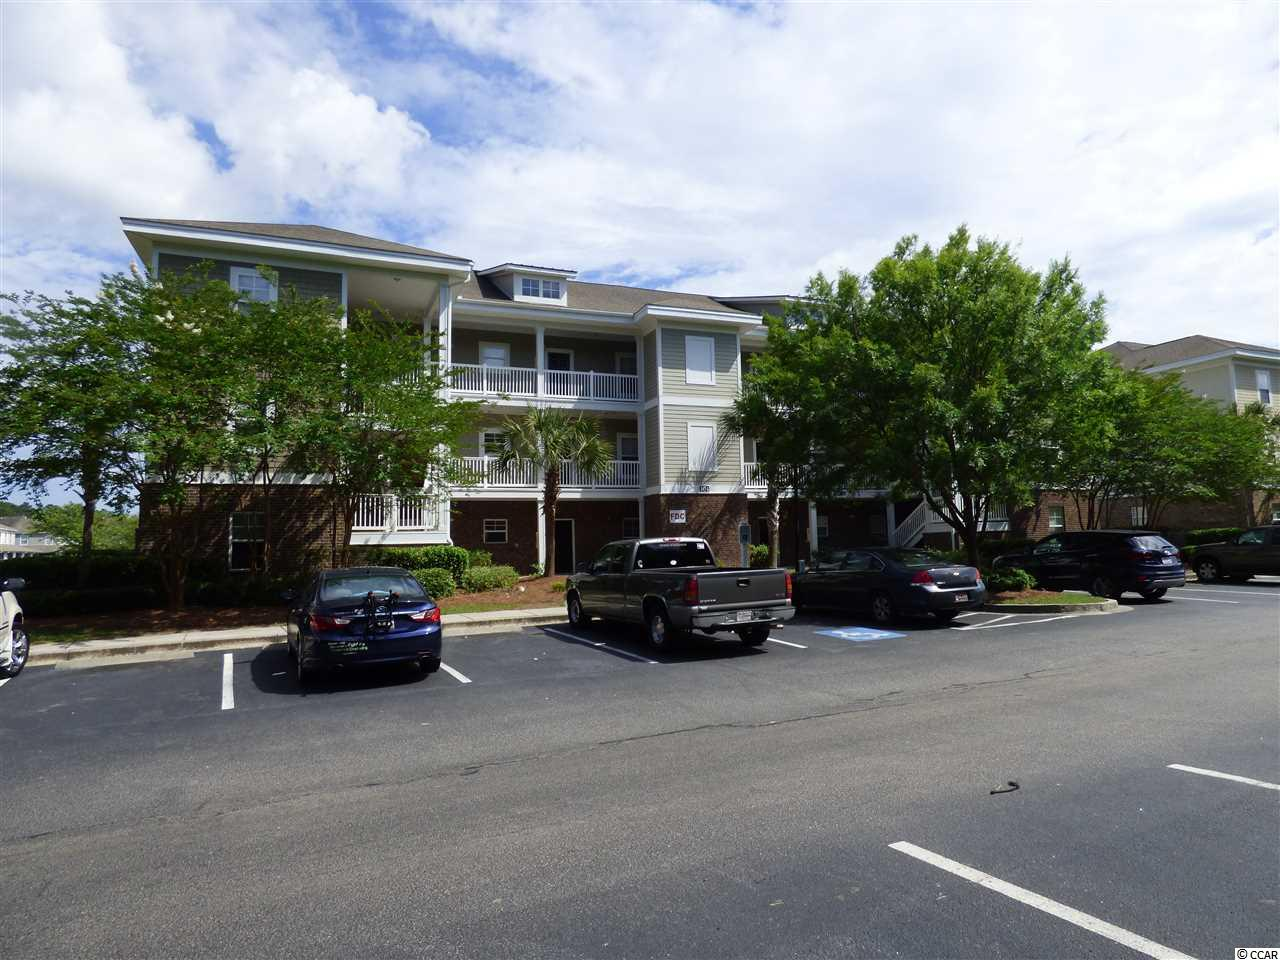 2 bedroom condo for sale at $79,900